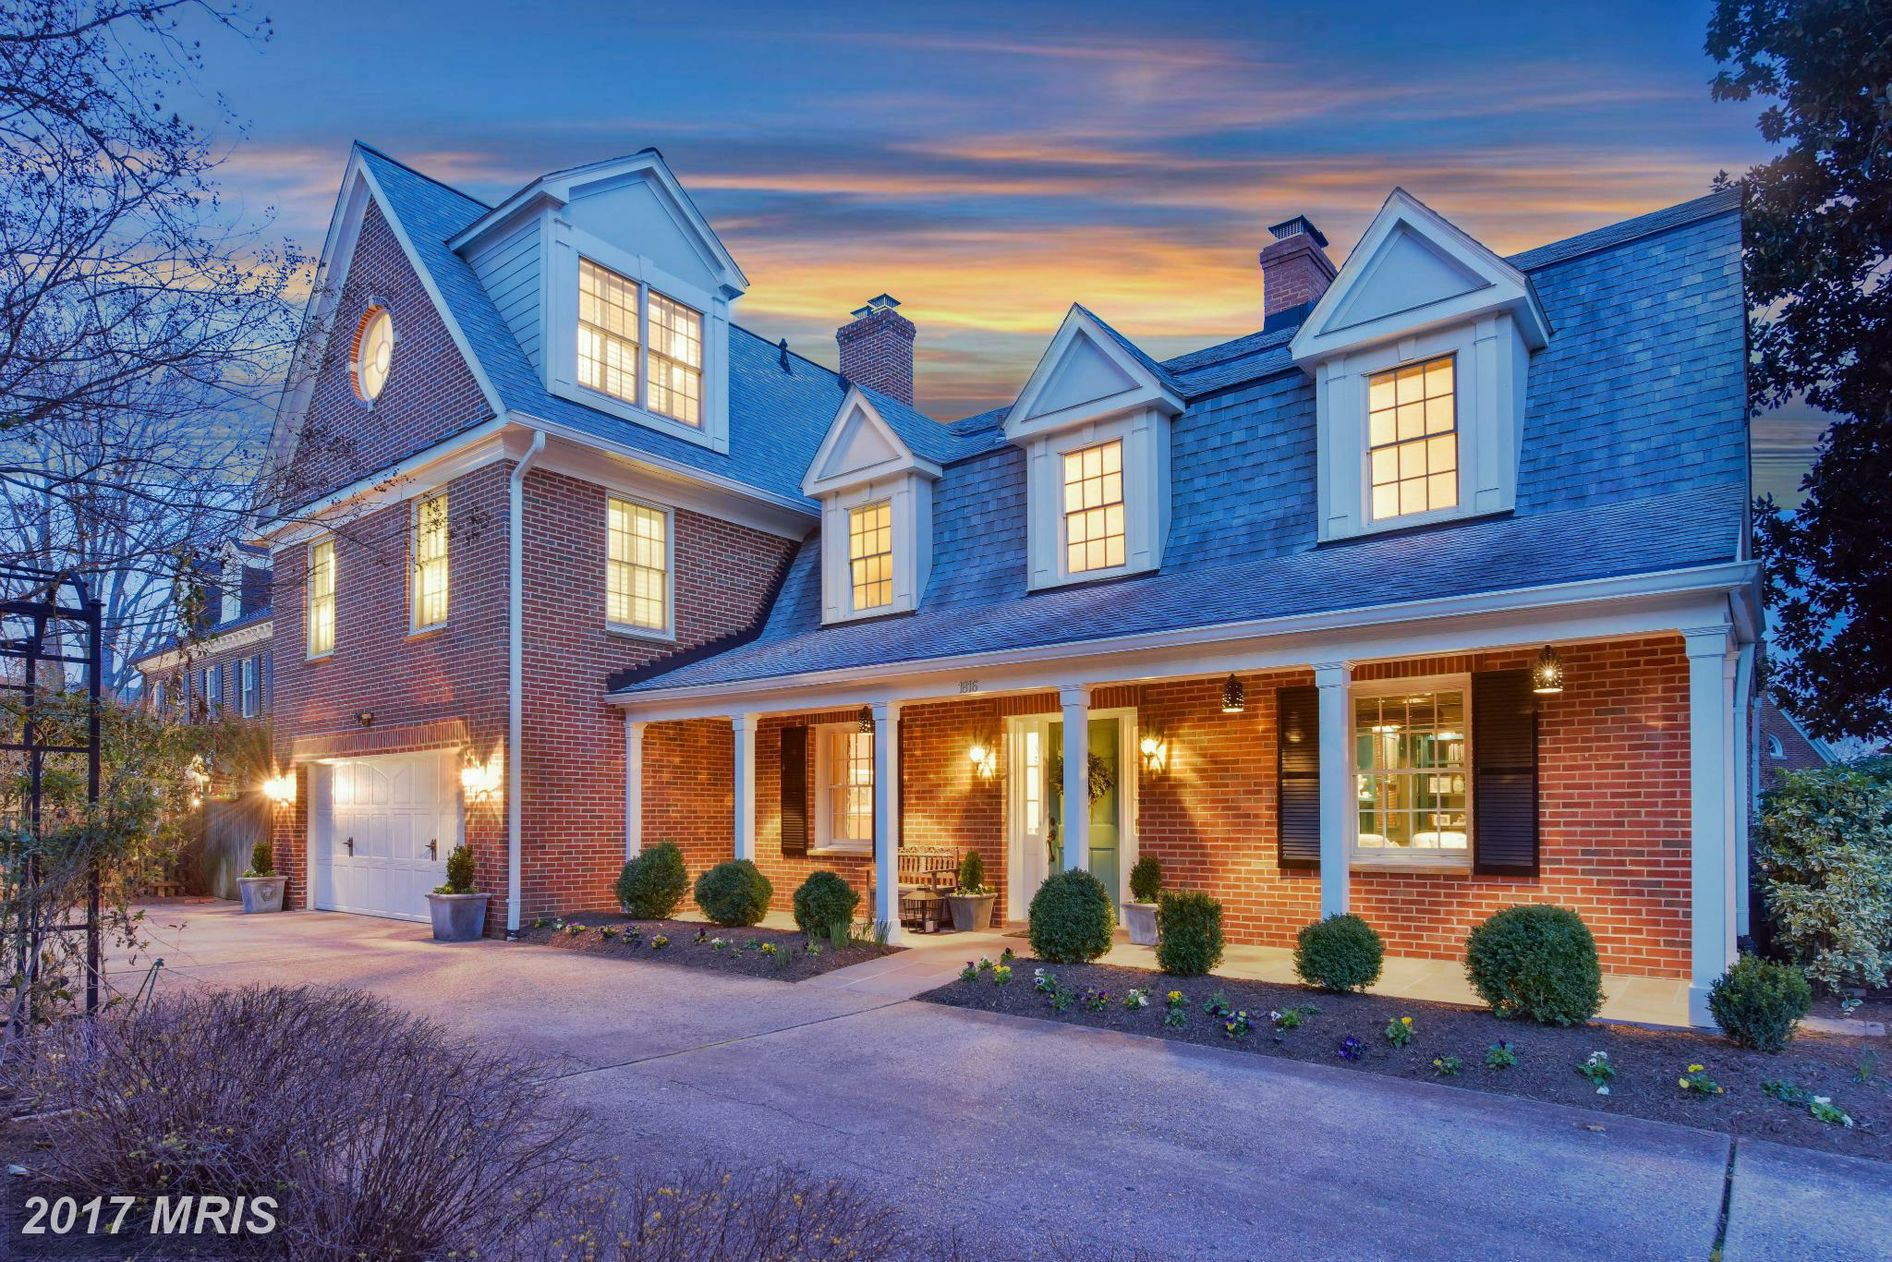 This 5-bedroom/7 bath Colonial in Belle Haven may not be on the market any longer (it sold for $1,975,000 on July 31) but it sure is fun to look at! (Image: Courtesy McEnearney Associates)